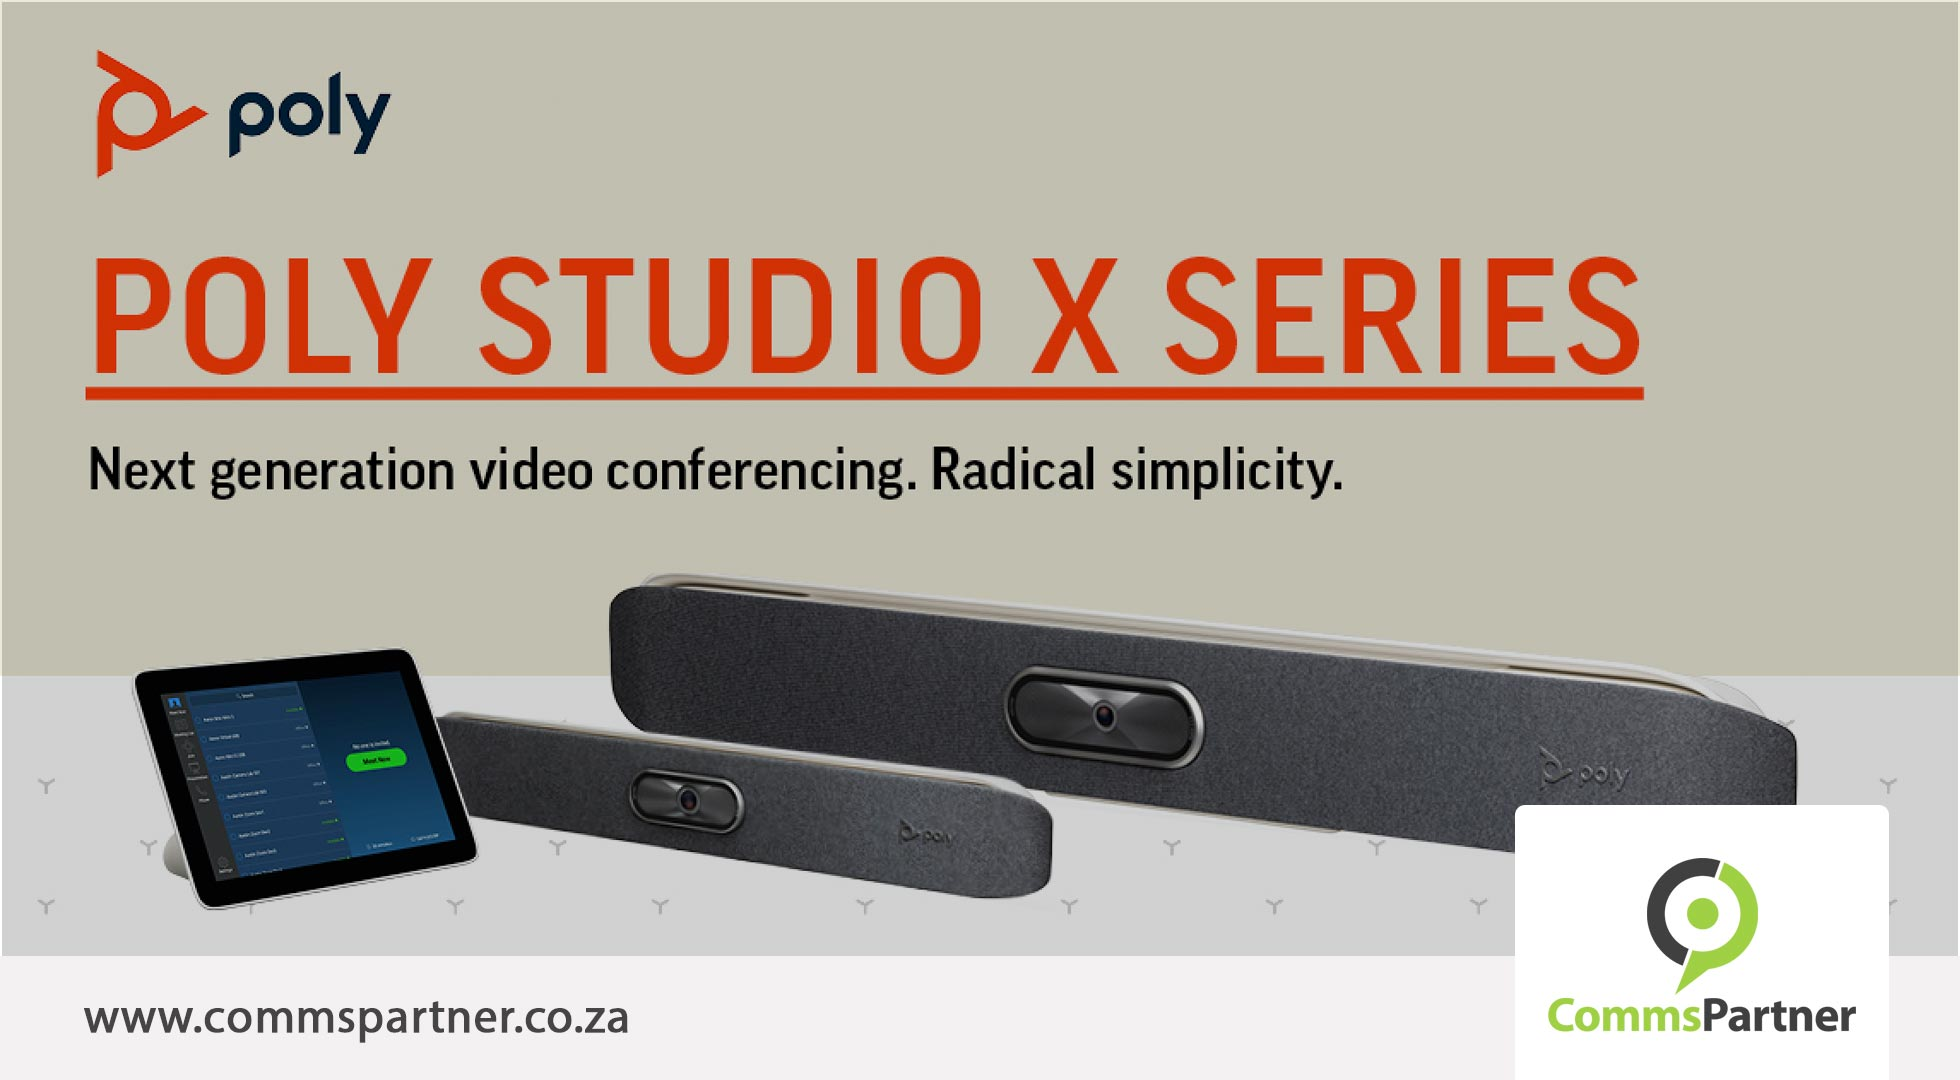 Poly Studio X Series